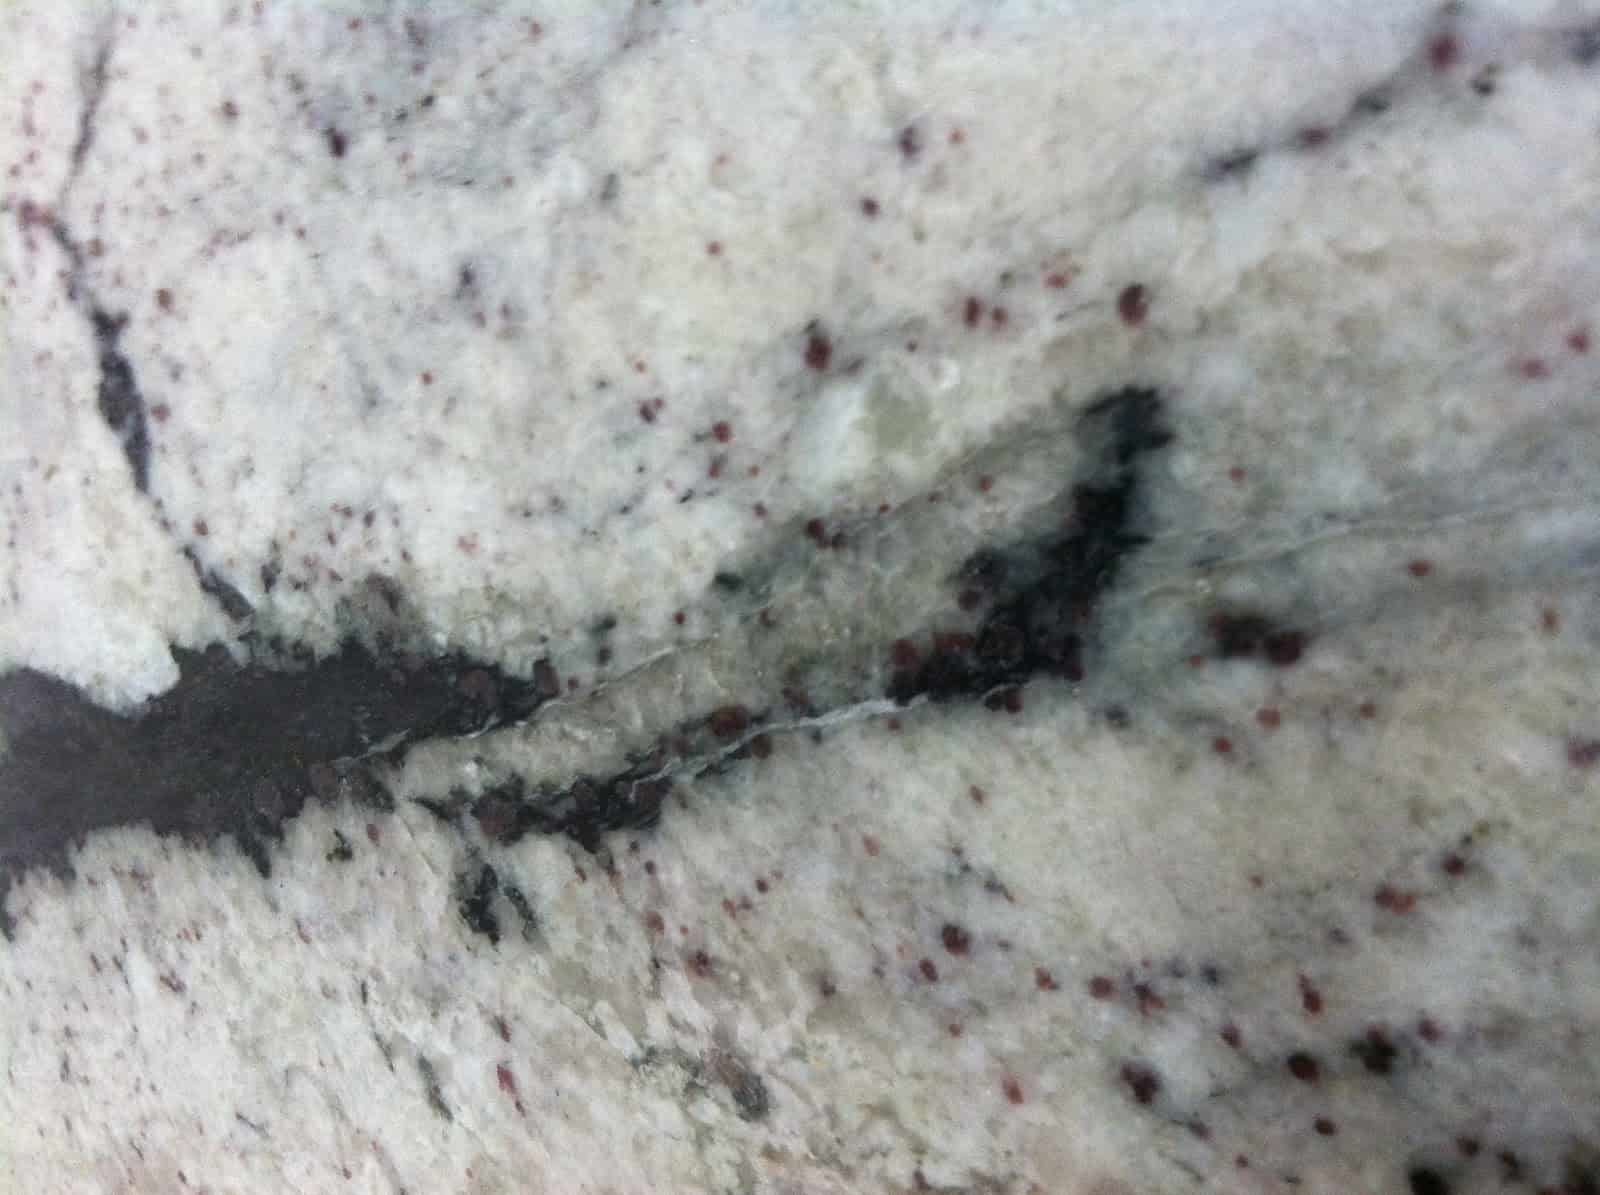 How To Repair A Chip In Granite Countertop How To Repair Fissures Cracks And Chips In Countertops